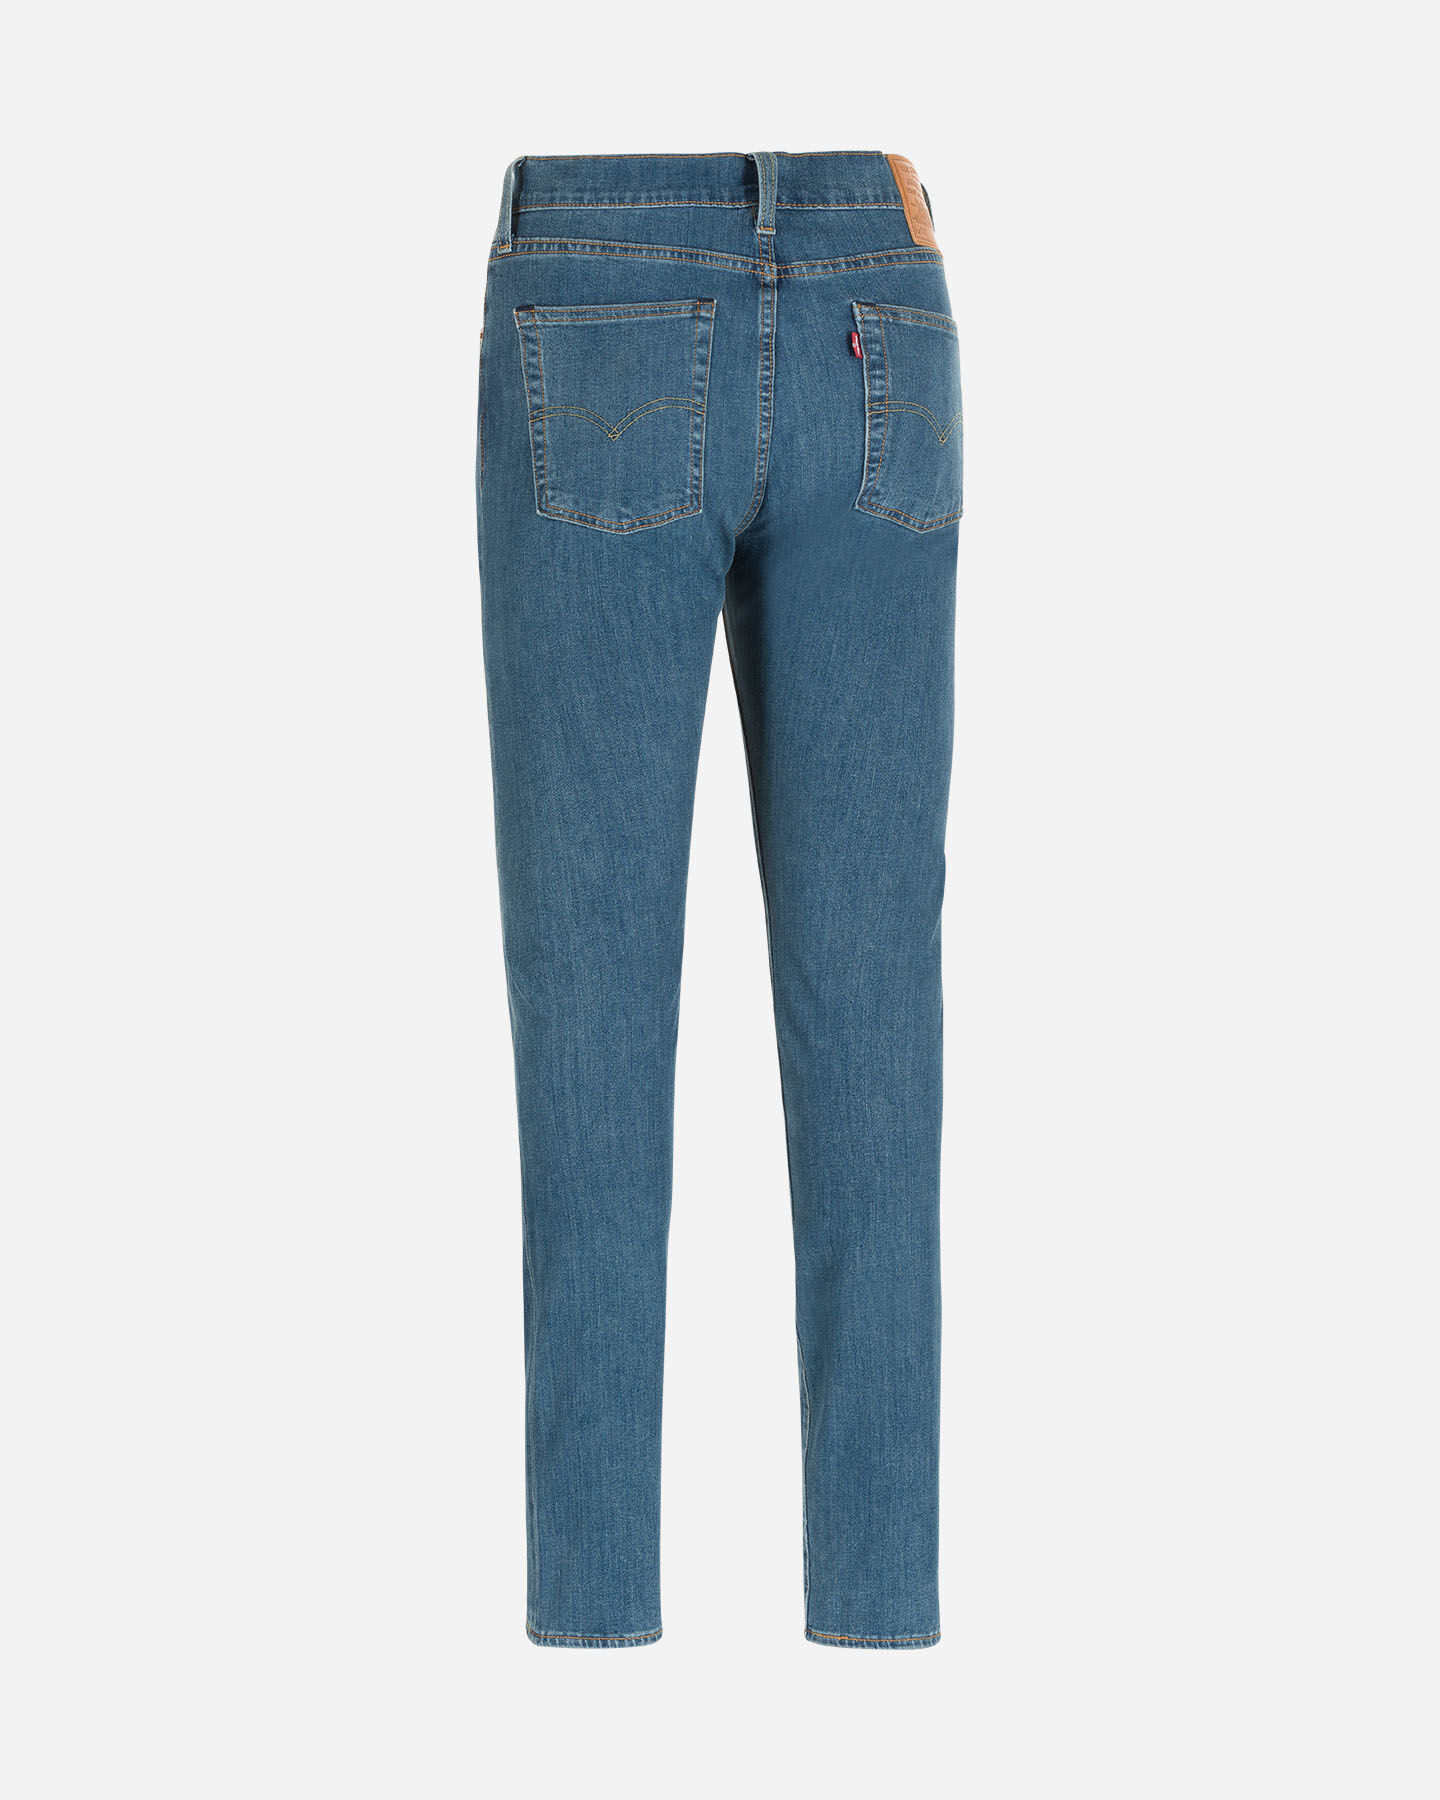 Jeans LEVI'S 510 SKINNY FIT M S4082674 scatto 1